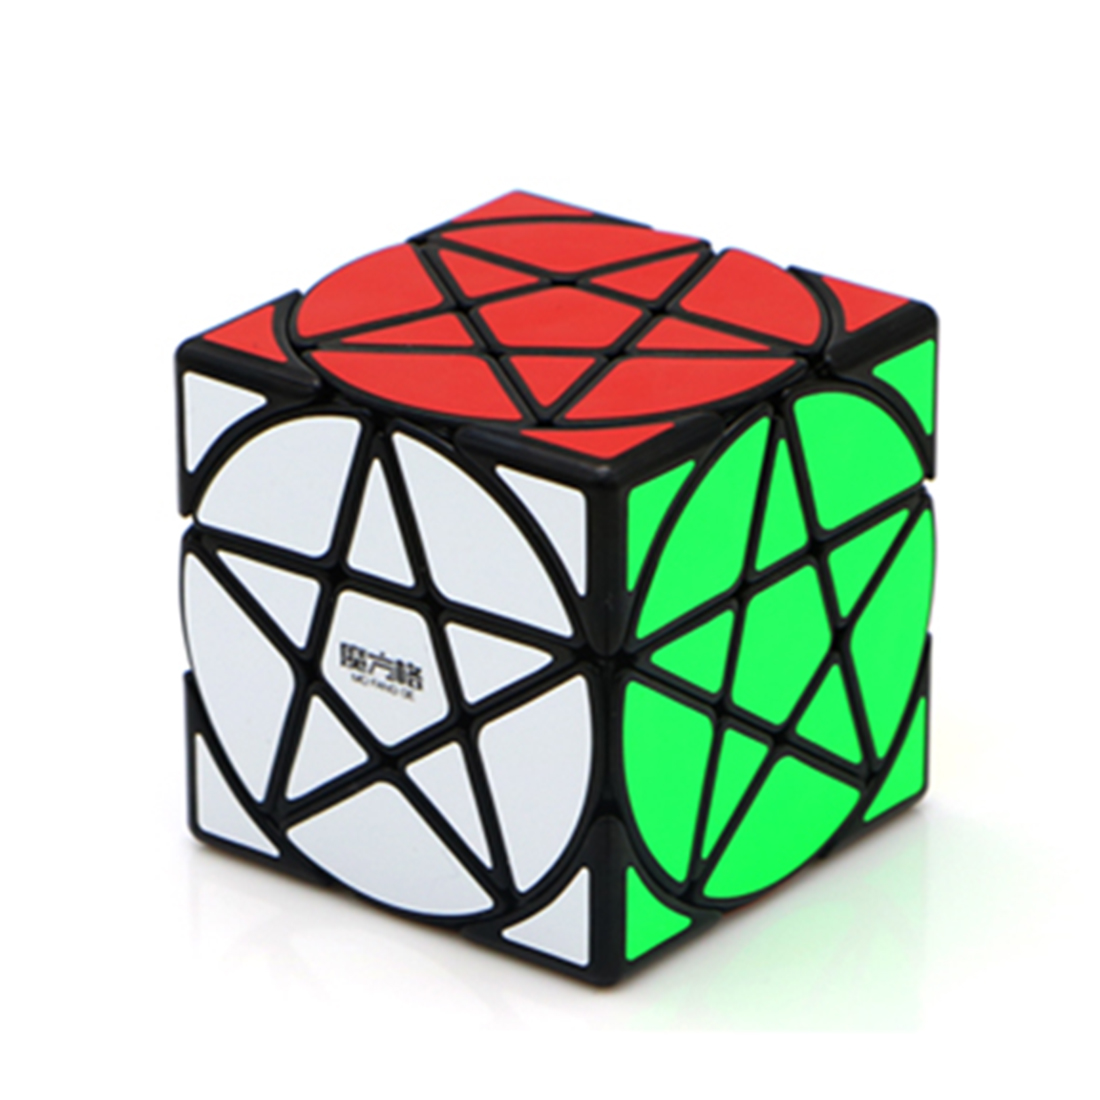 QiYi Mofangge Five-pointed Star Pattern Magic Cube Puzzle Toy for Competition